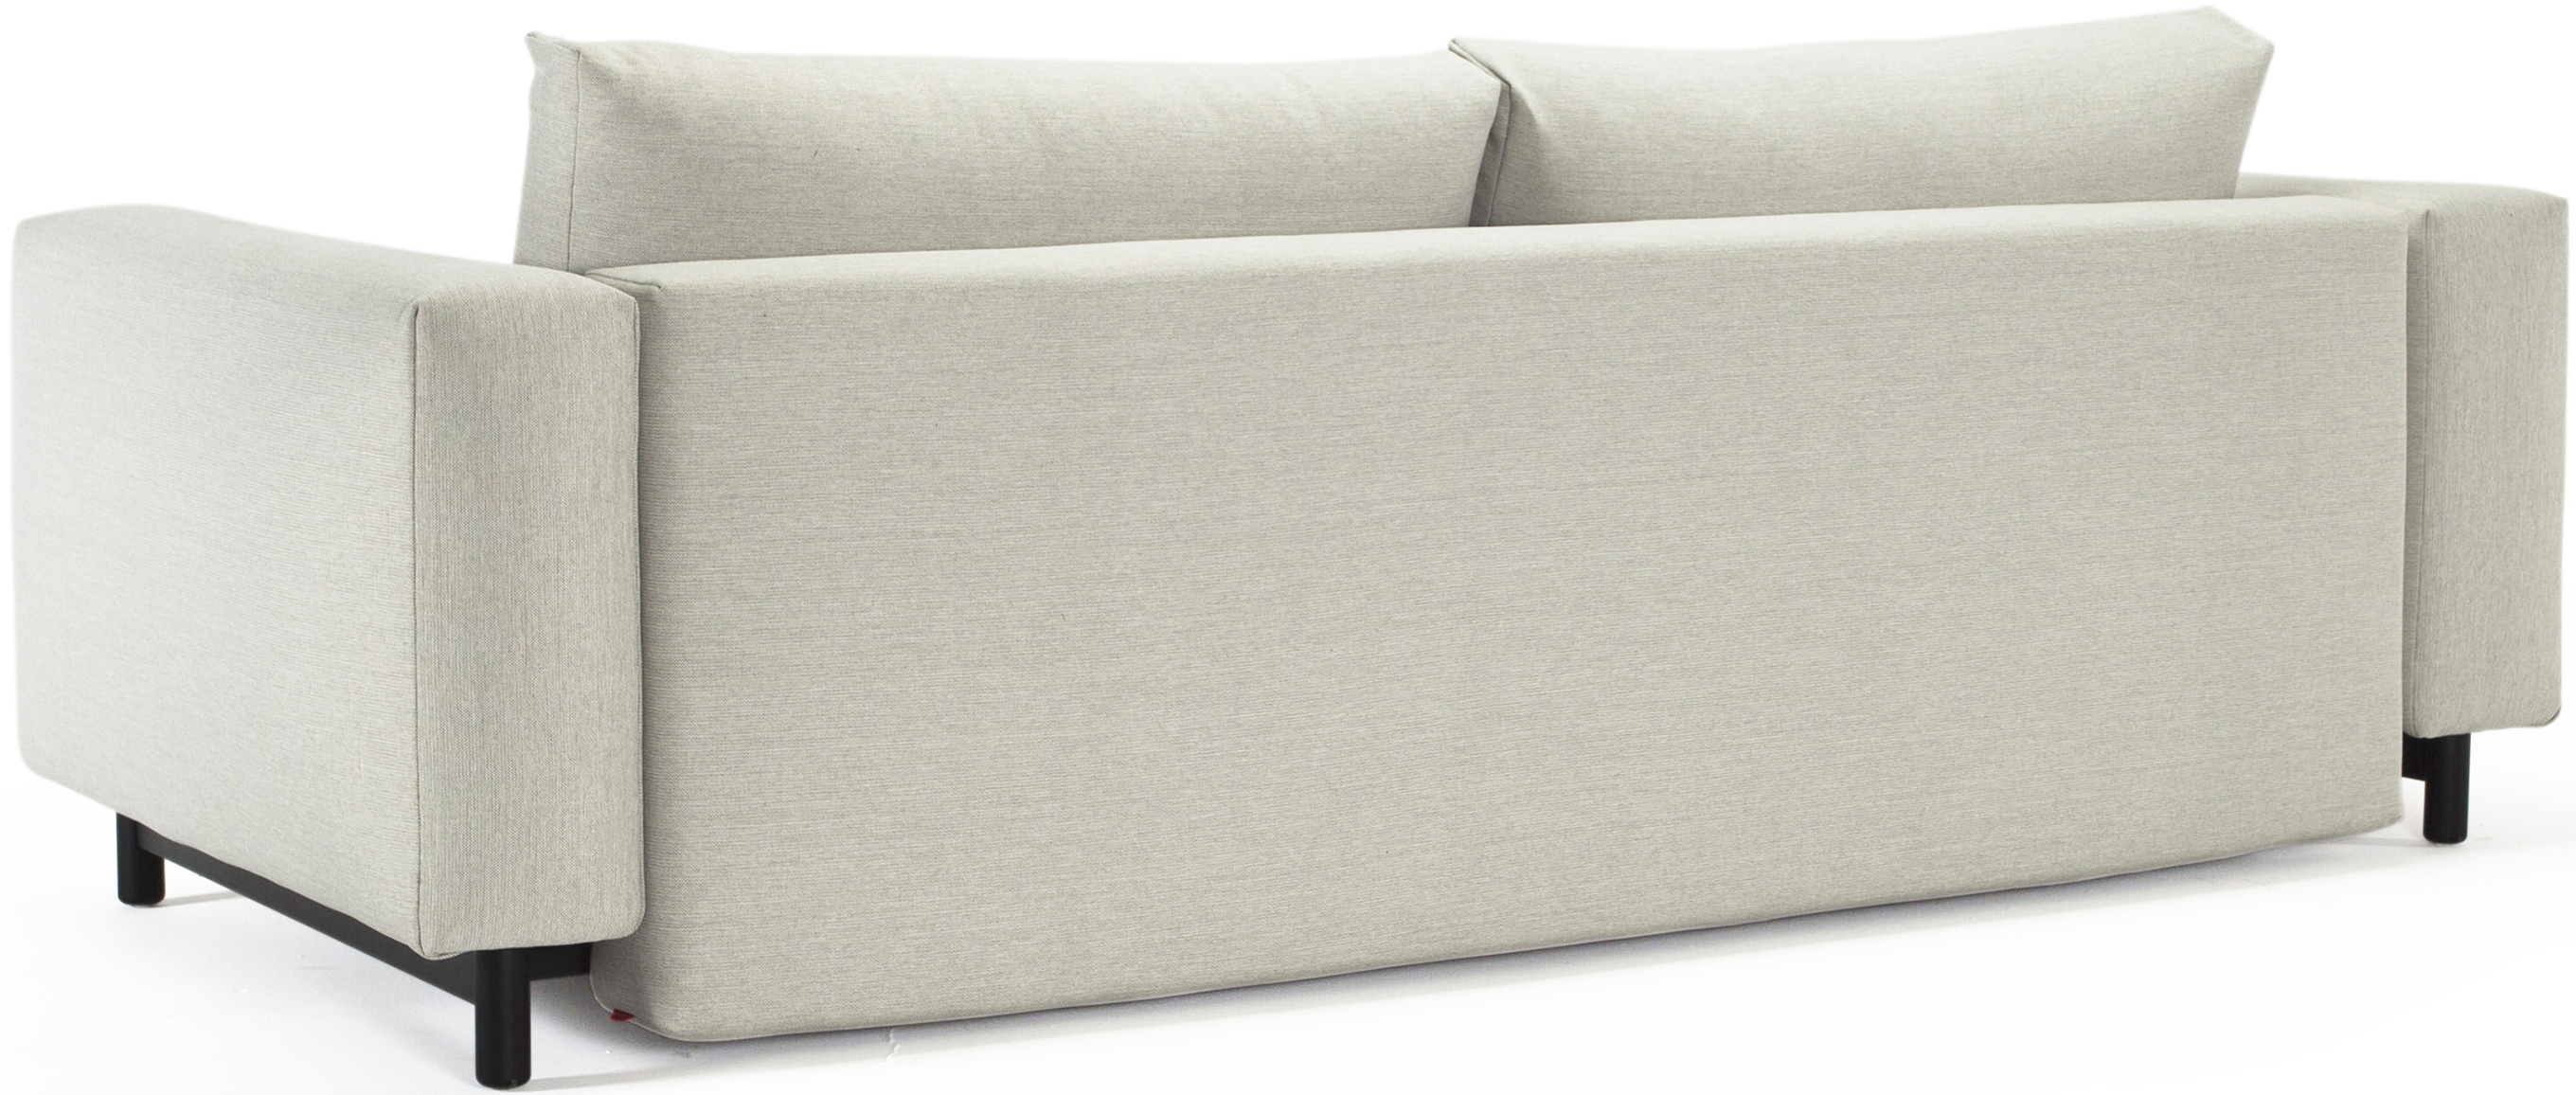 the back of the magni sofa